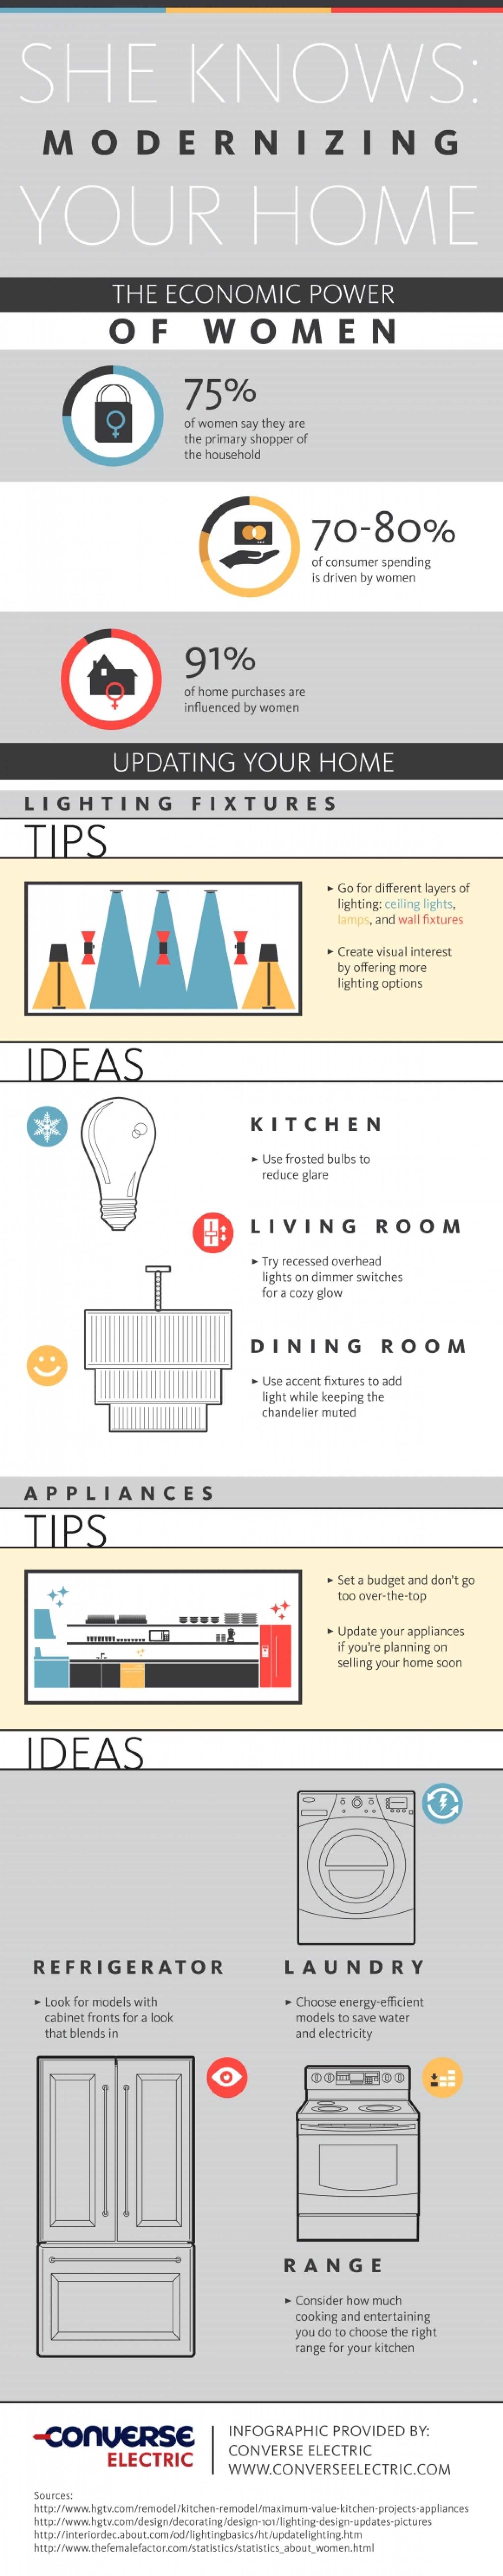 She Knows: Modernizing Your Home Infographic